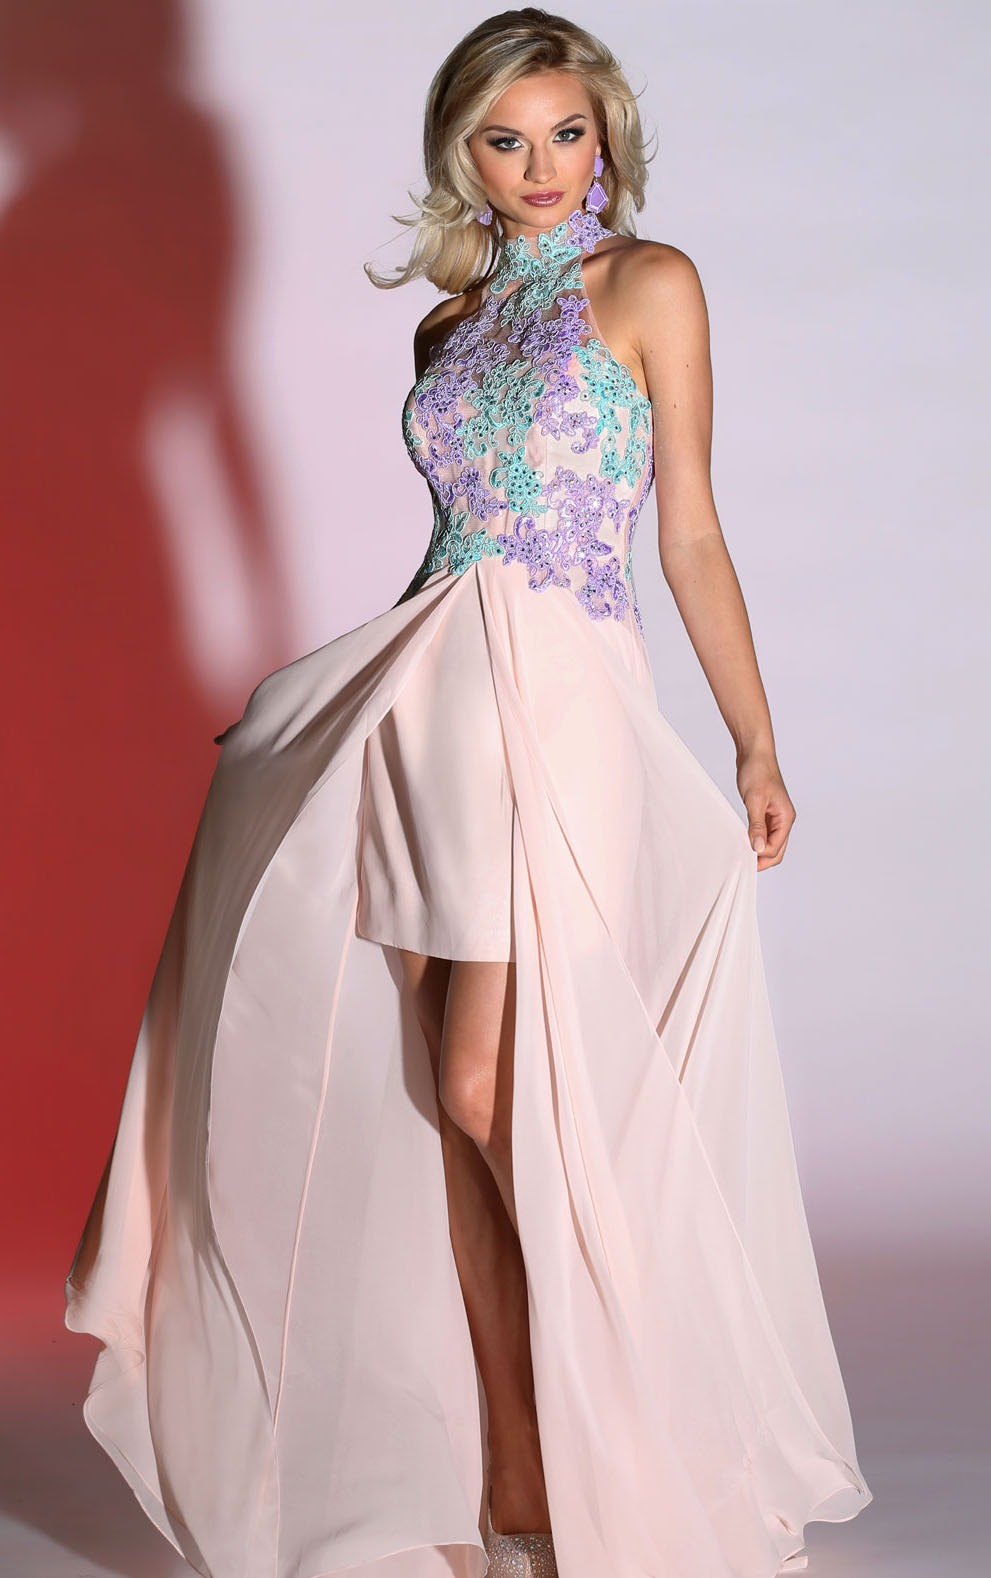 http://www.sherrylondon.co.uk/halter-neck-sleeveless-pink-high-low-chiffon-prom-dress-with-coloful-lace-p-4540.html